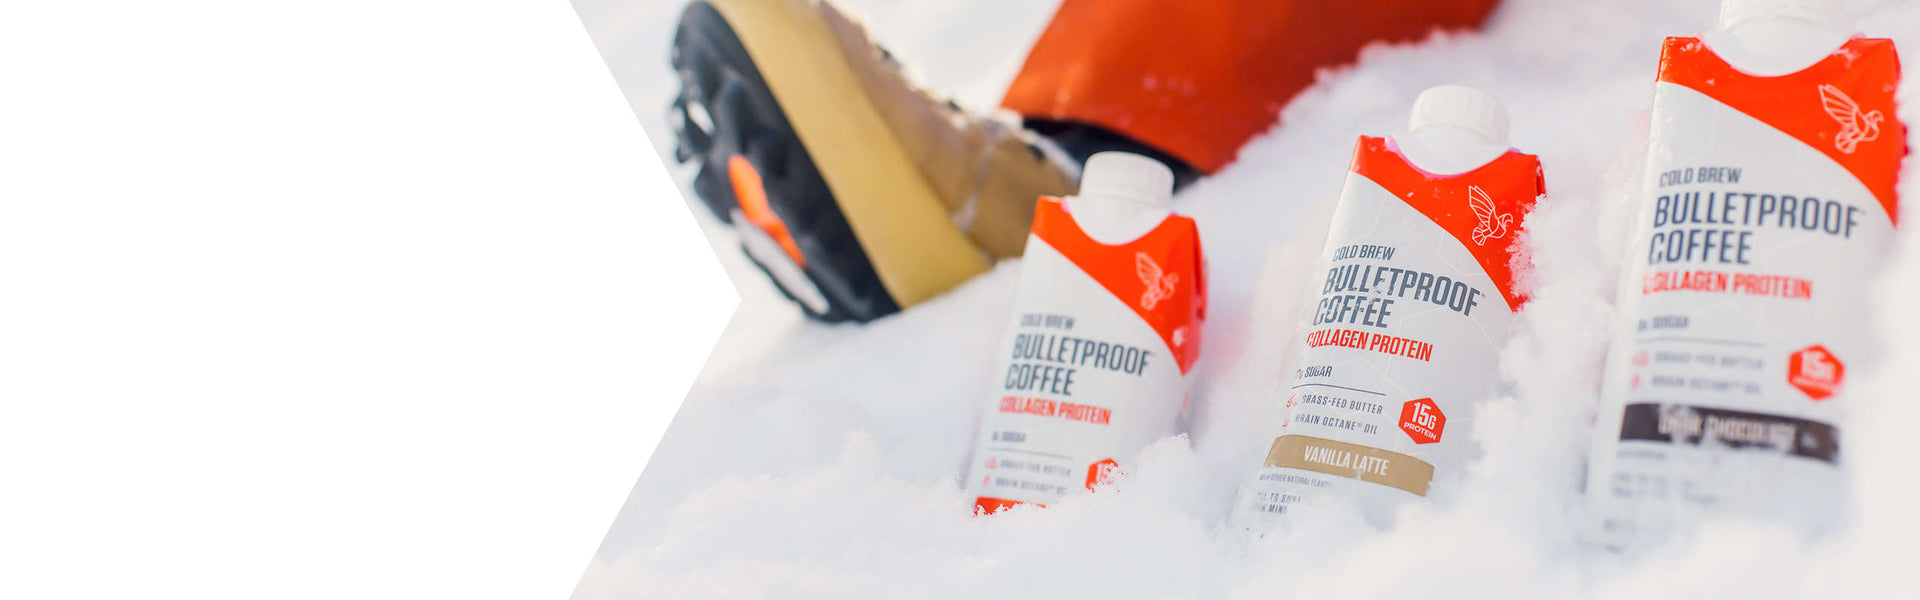 Bulletproof Coffee Cold Brew spread out in snow